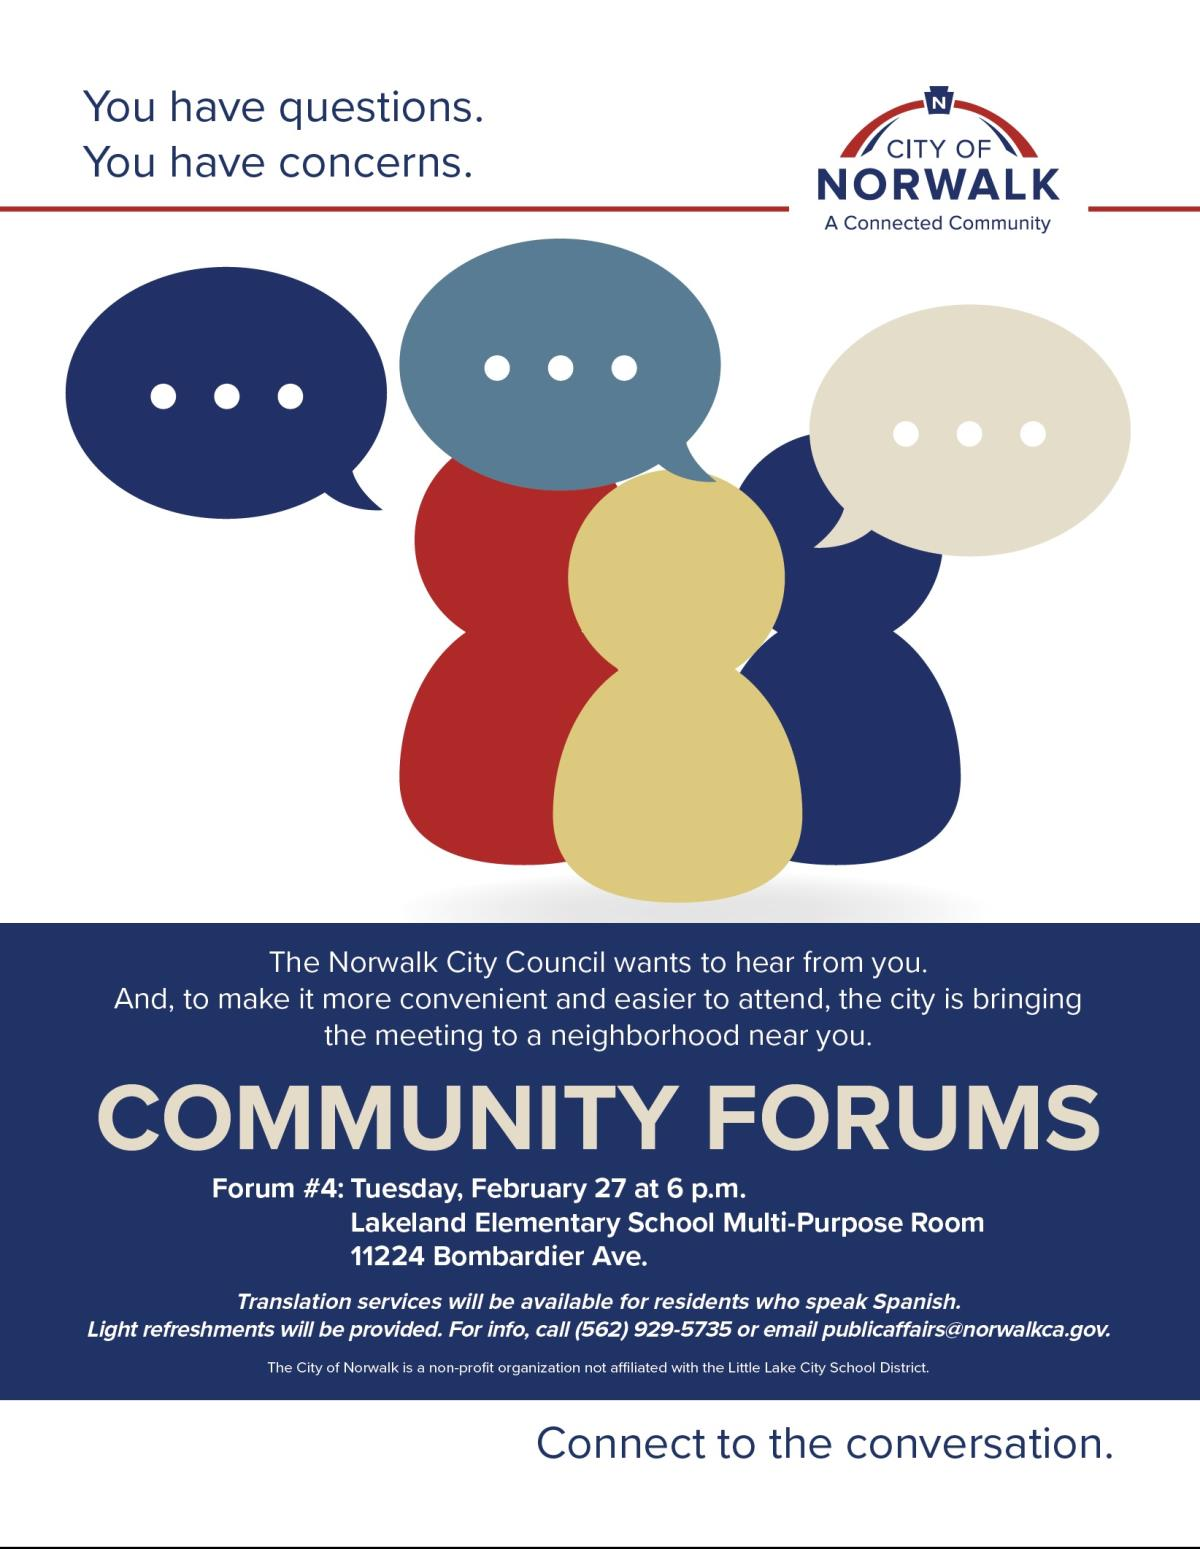 Community Forum-Lakeland Elementary